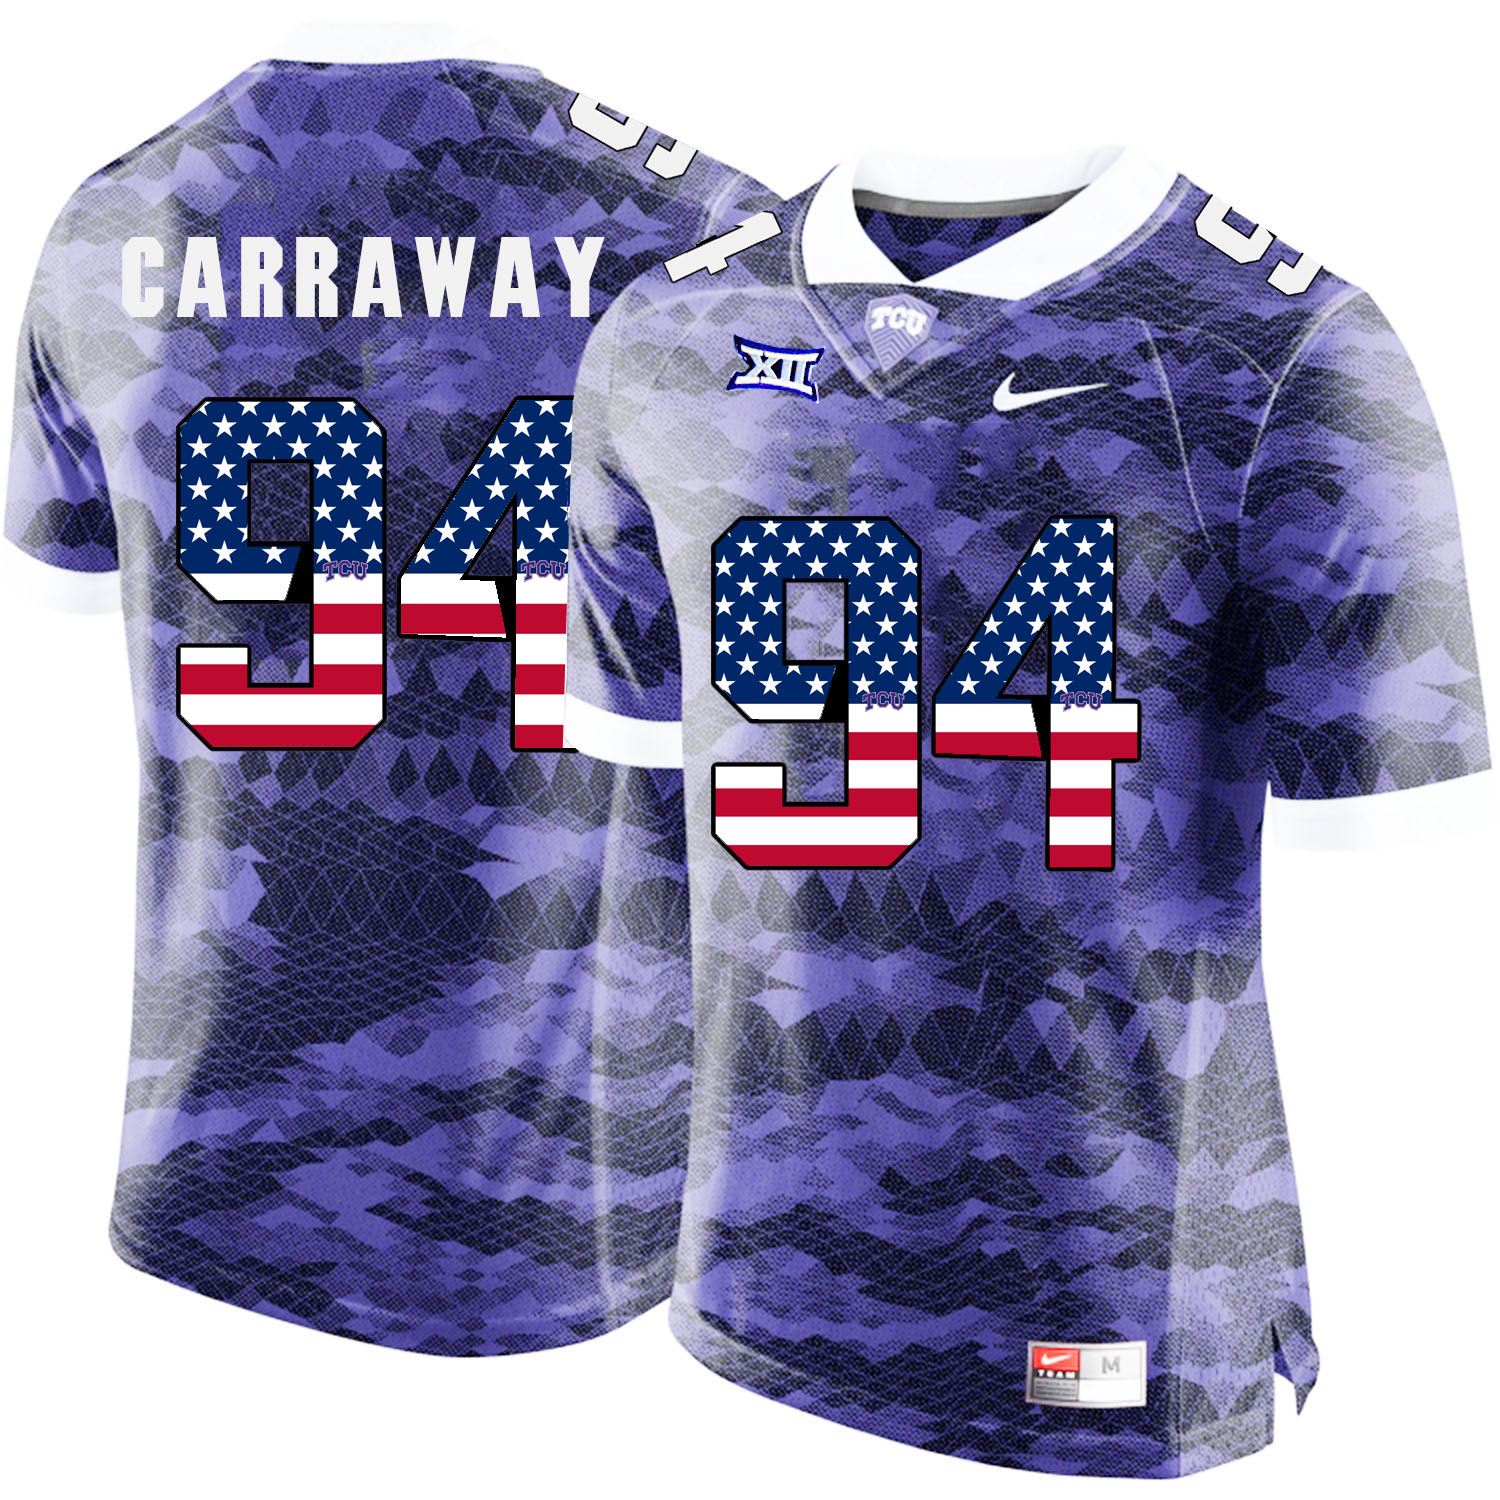 TCU Horned Frogs 94 Josh Carraway Purple USA Flag College Football Jersey